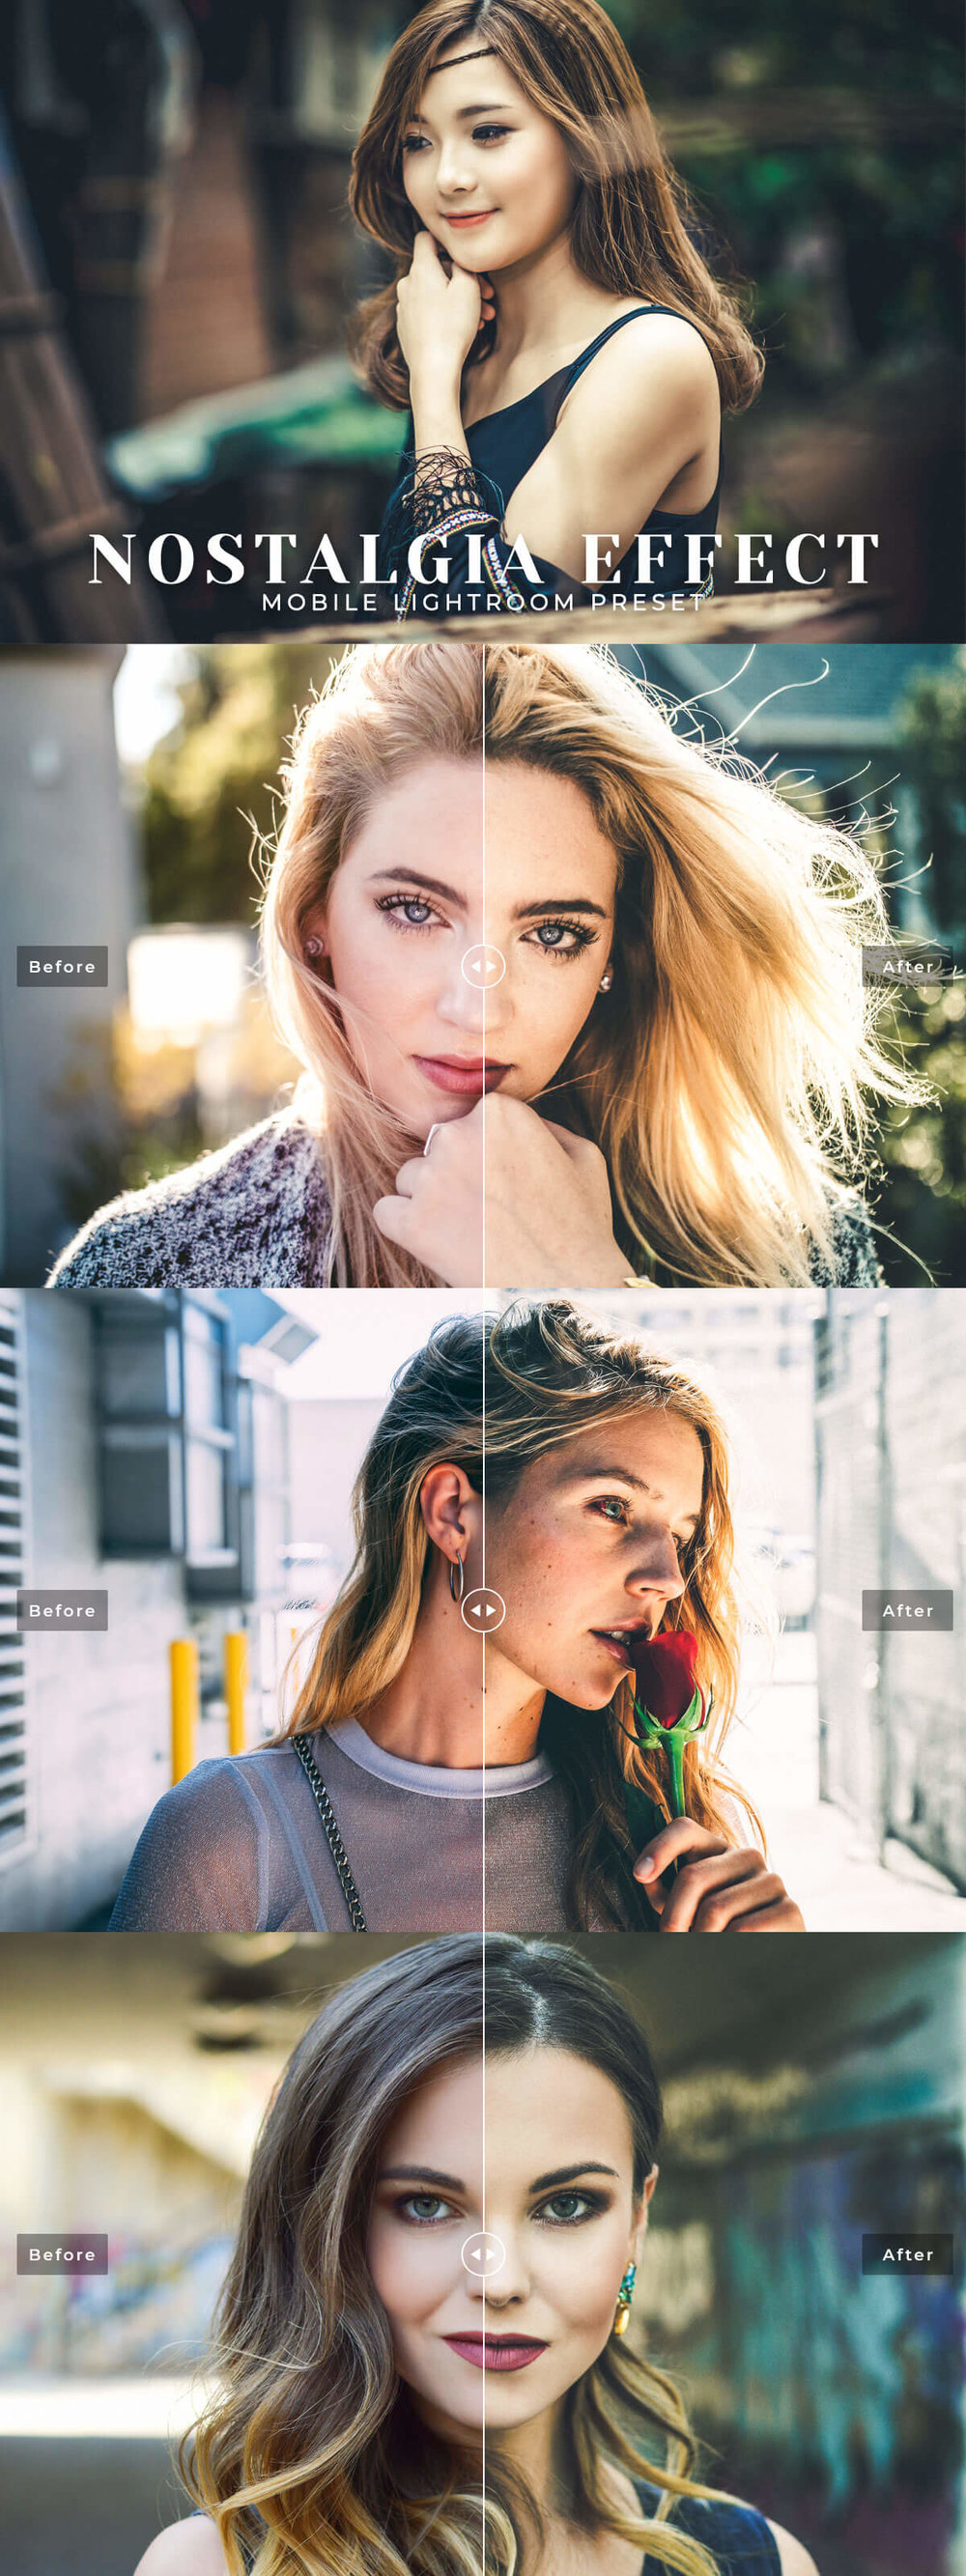 Free Nostalgia Effect#Mobile #Lightroom #Presetwill add memorable film-like look effects with your portraits in perfect finishing touch with just in one click.